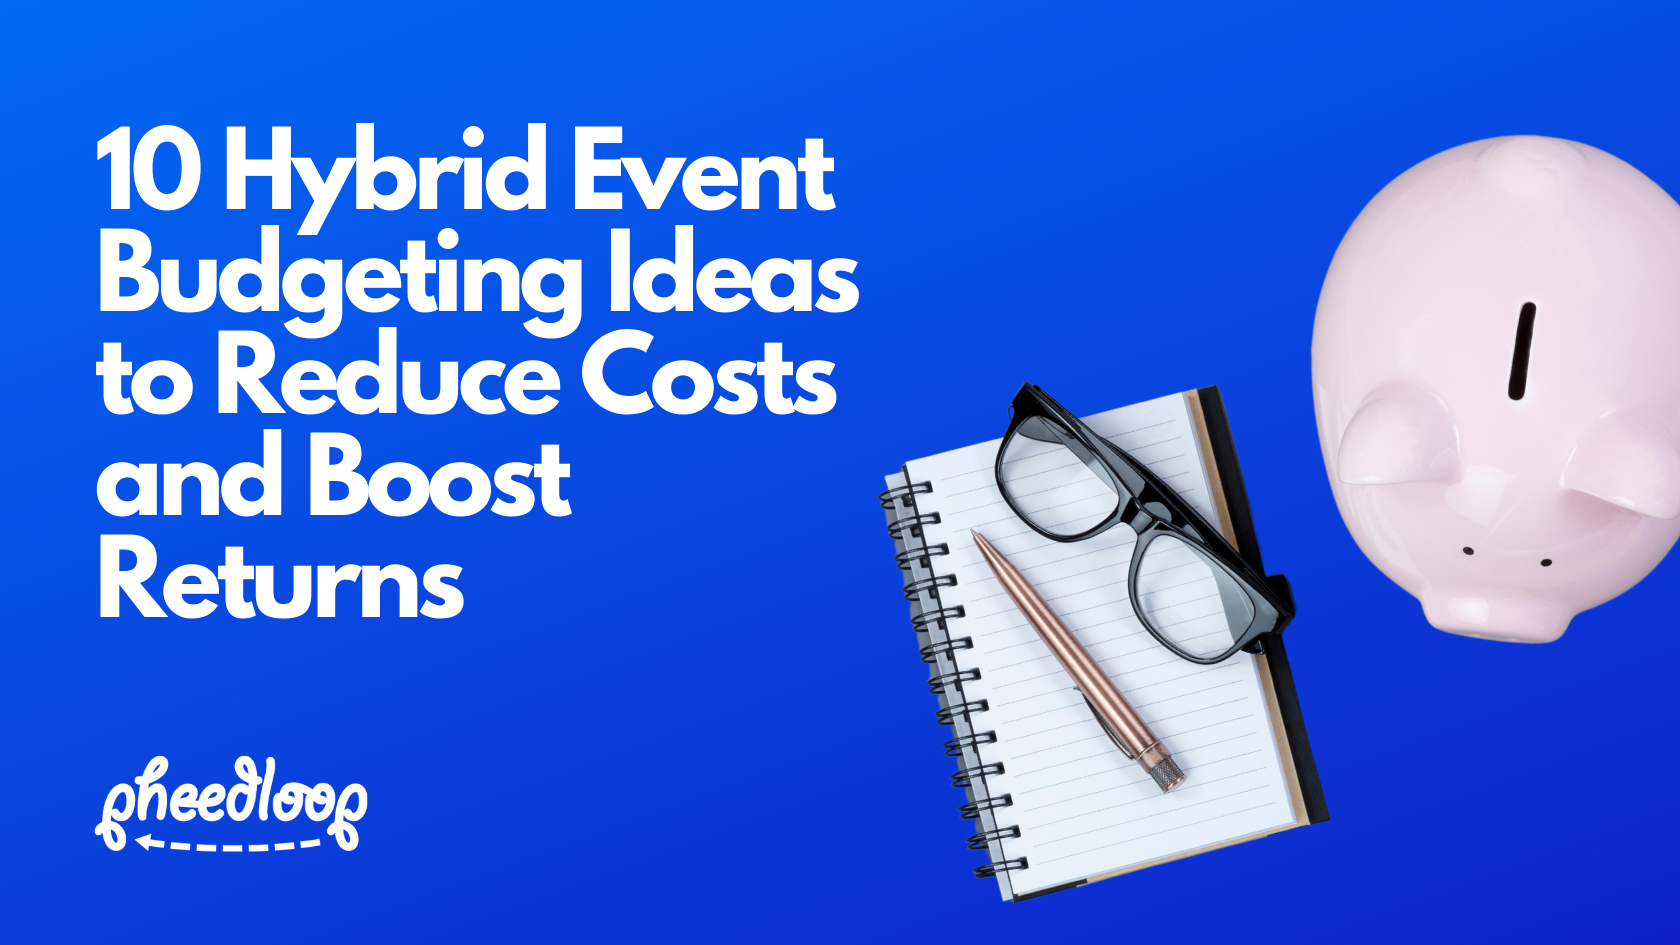 10 Hybrid Event Budgeting Ideas to Reduce Costs and Boost Returns